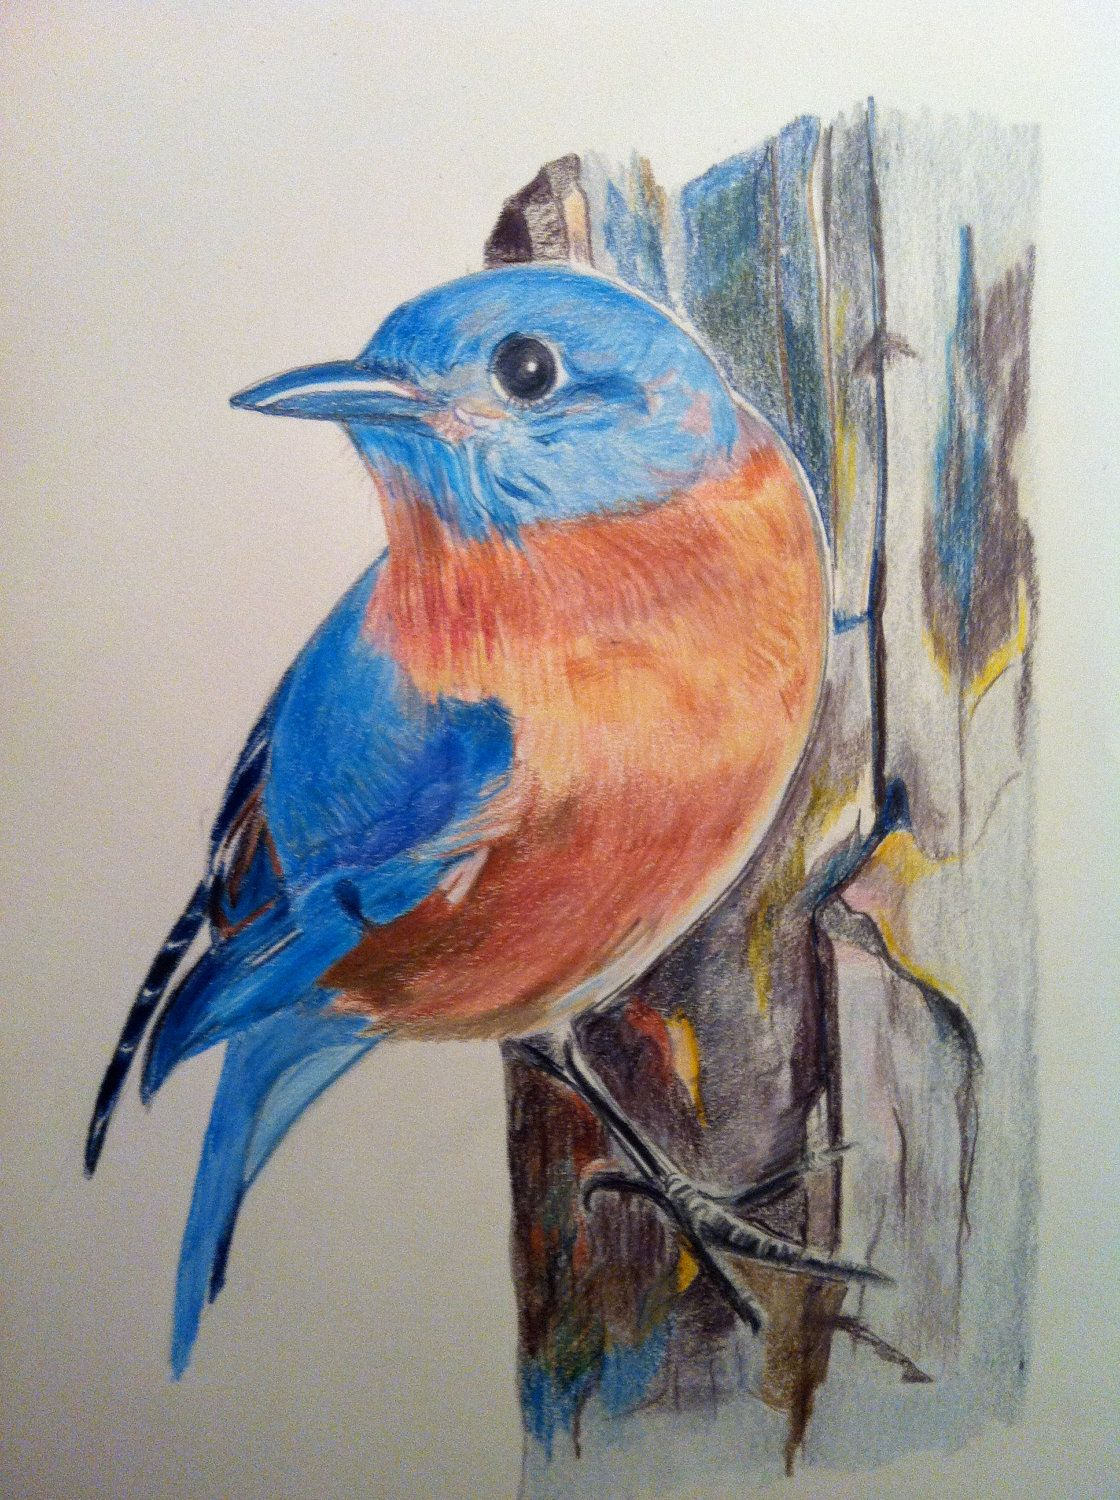 Missouri Bluebird In Watercolor Pencil By Melangelo On Etsy Https